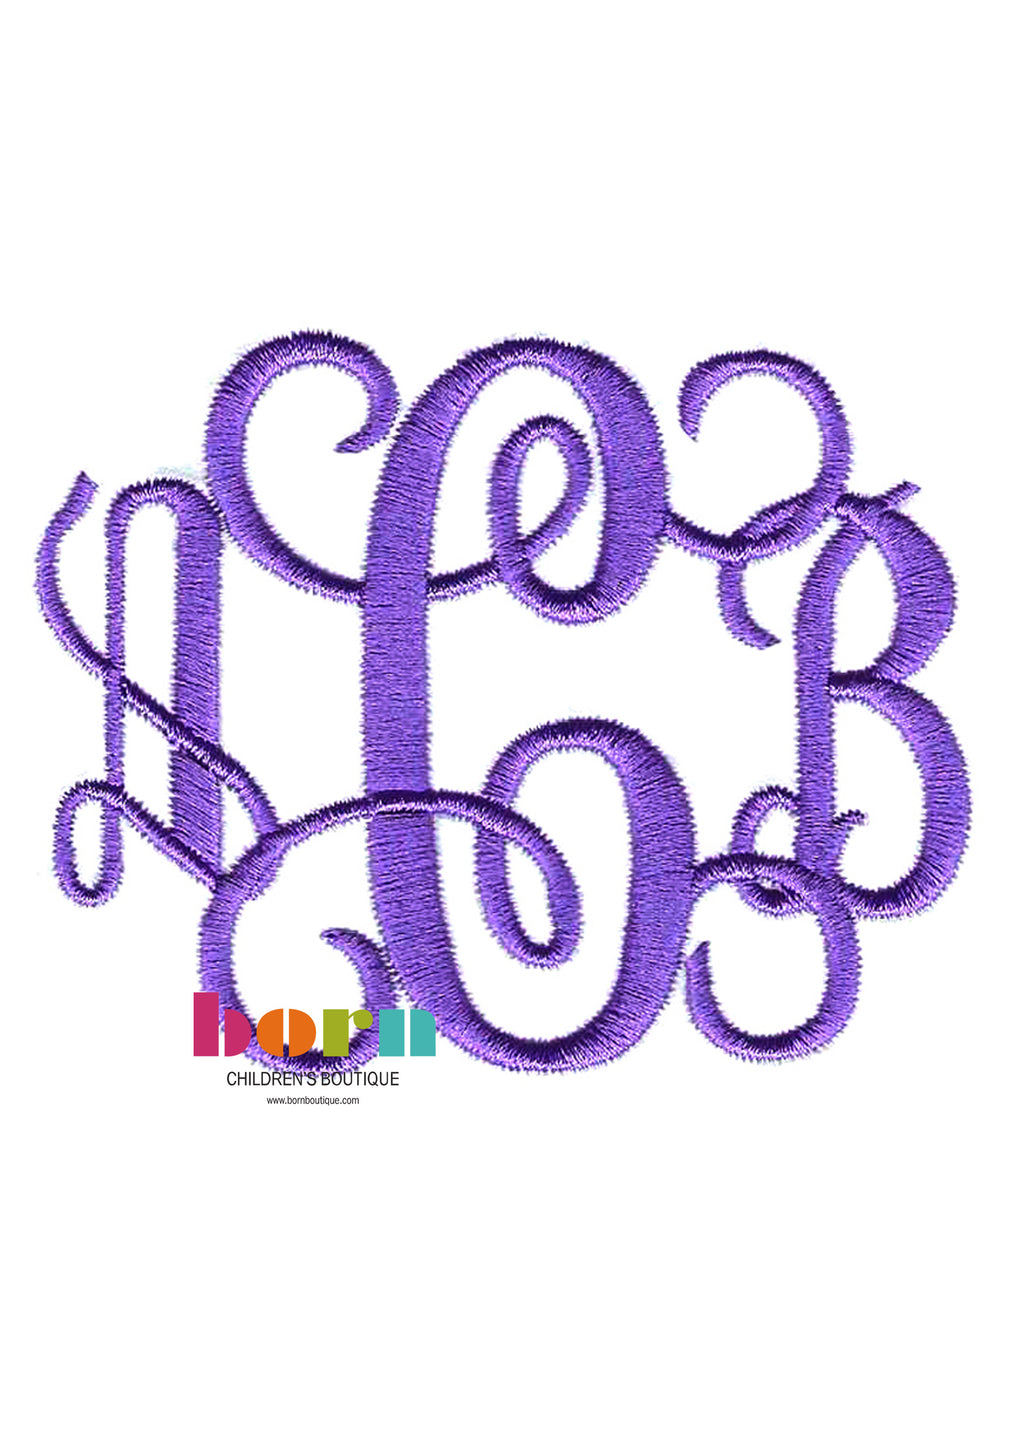 Pendant Initials - Born Childrens Boutique